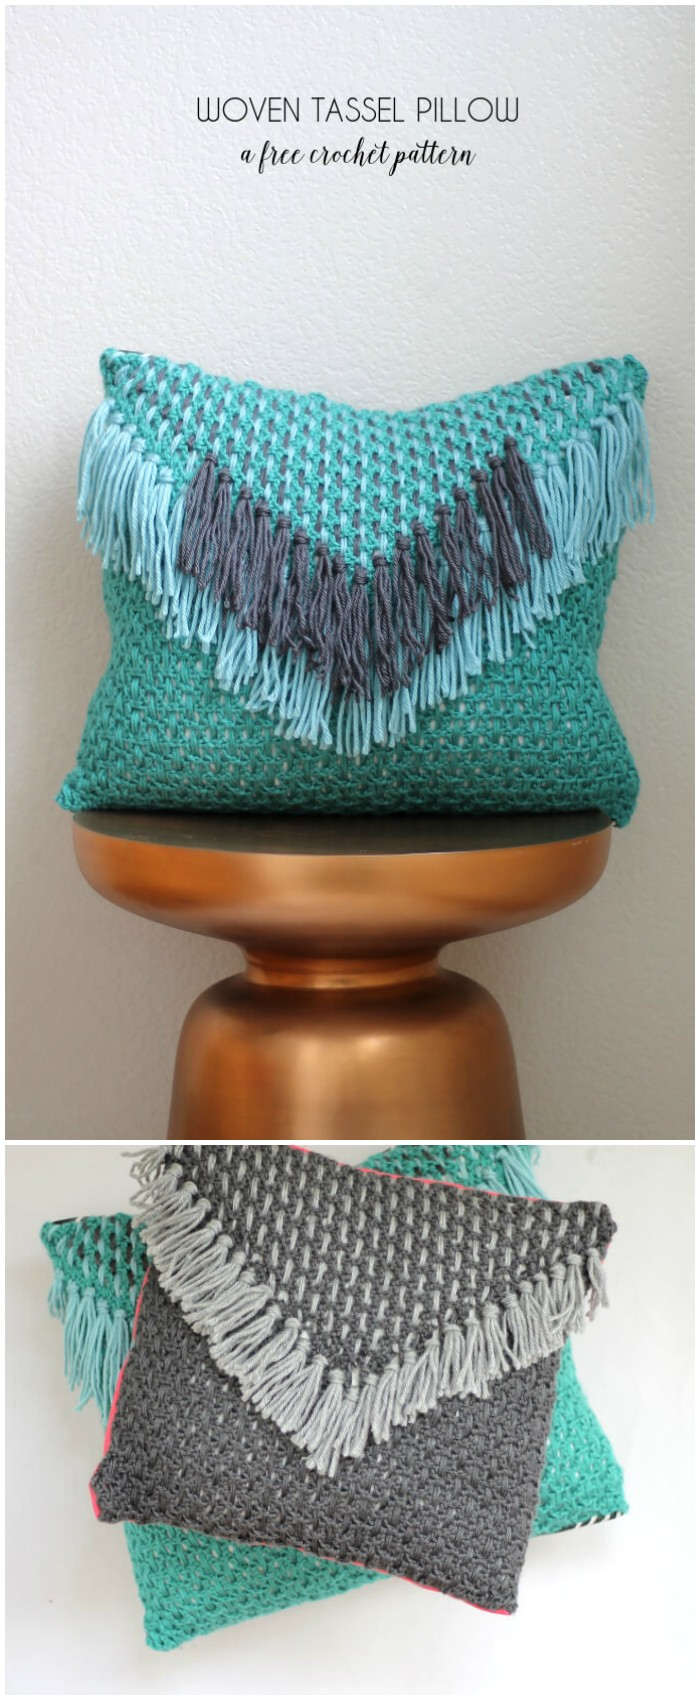 Tassel Pillow woven crochet Pattern